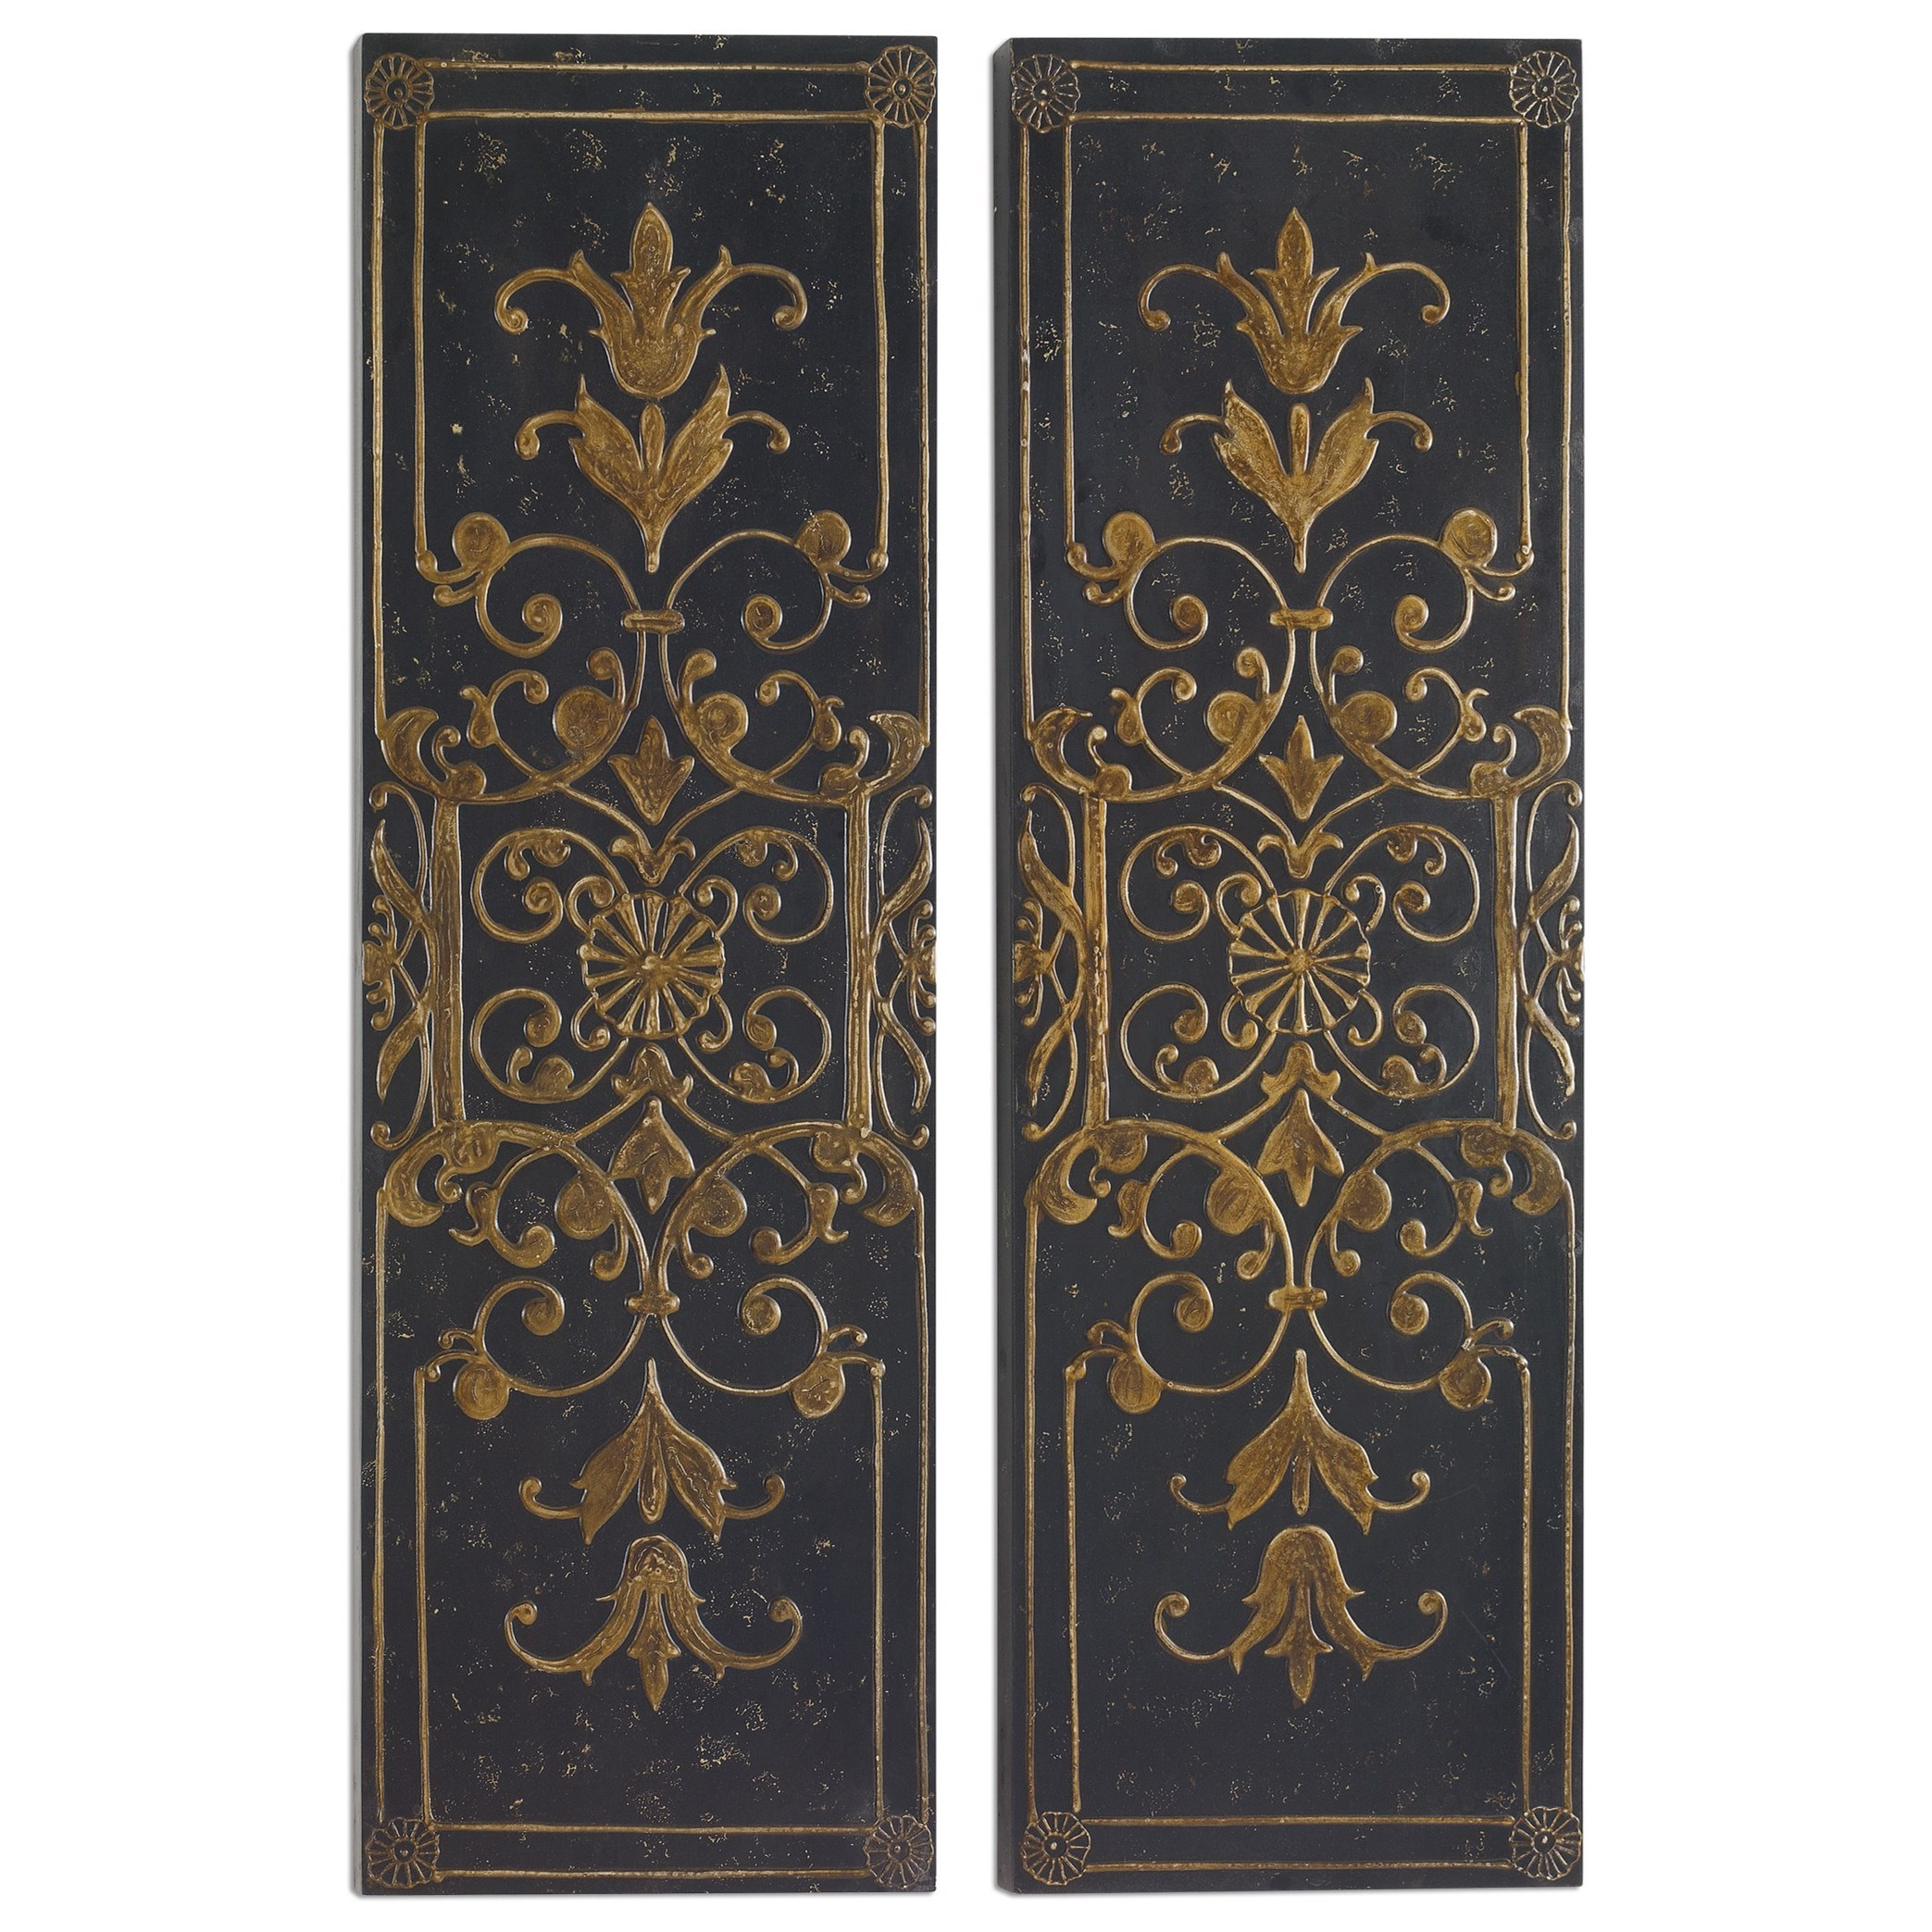 Uttermost Alternative Wall Decor Melani Decorative Panels S/2 - Item Number: 04023